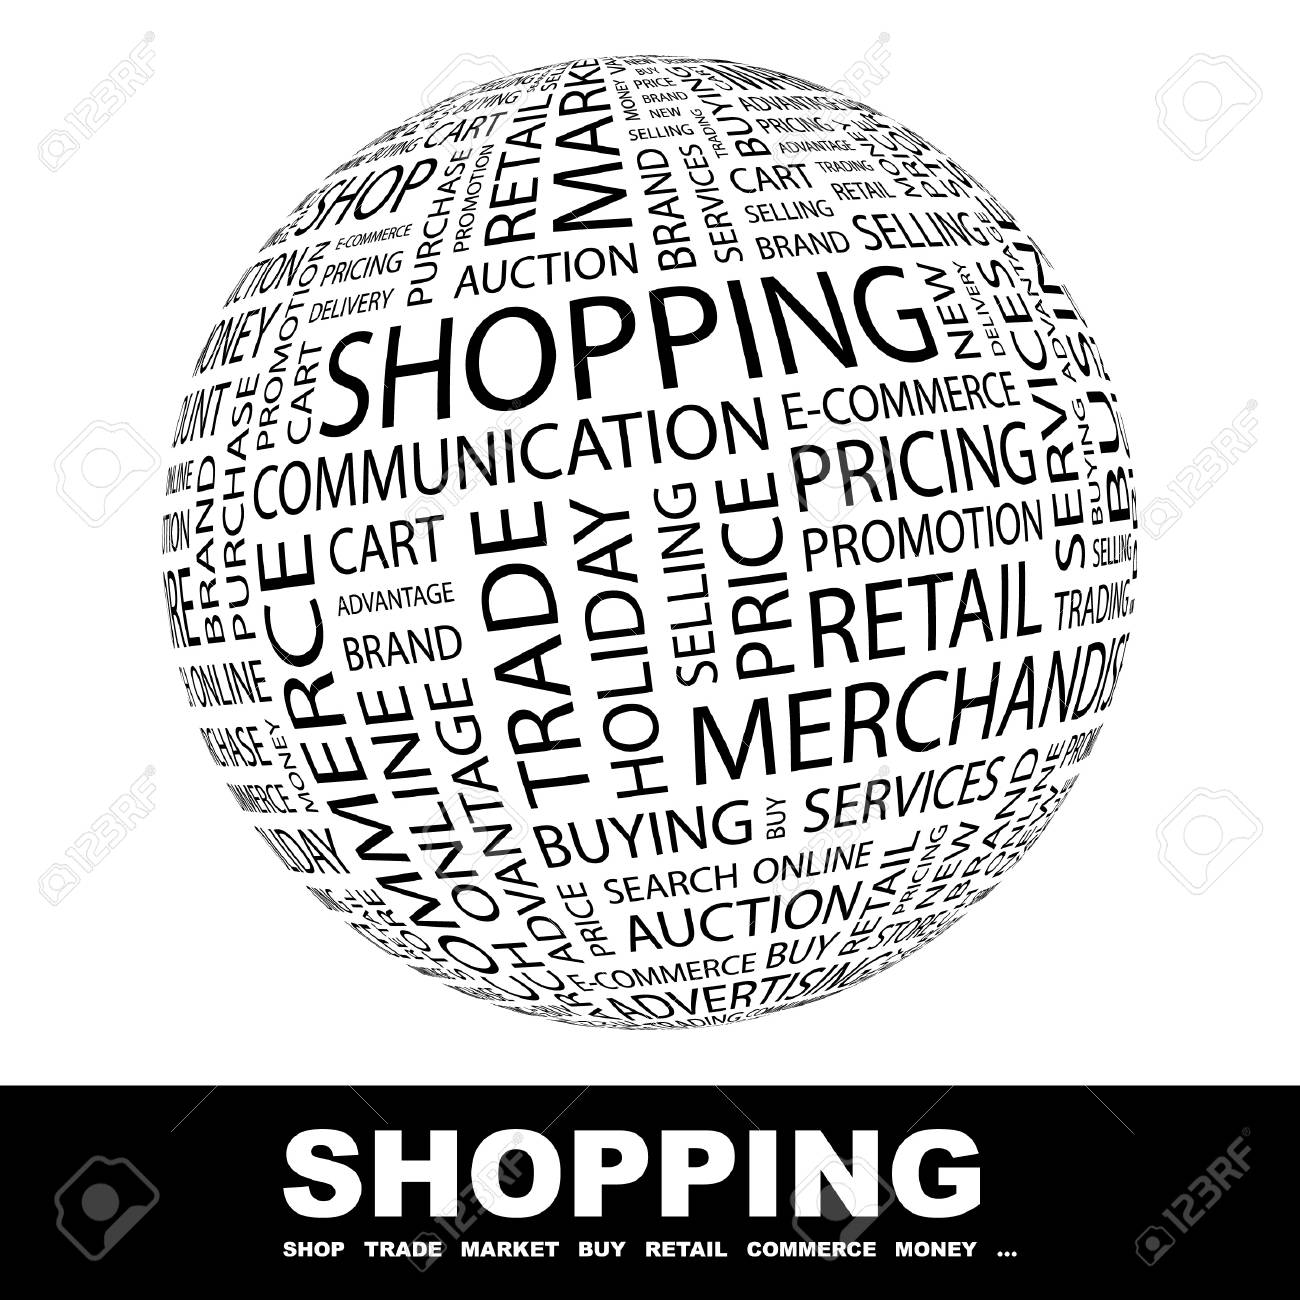 SHOPPING. Globe with different association terms. Wordcloud vector illustration. Stock Vector - 8840353